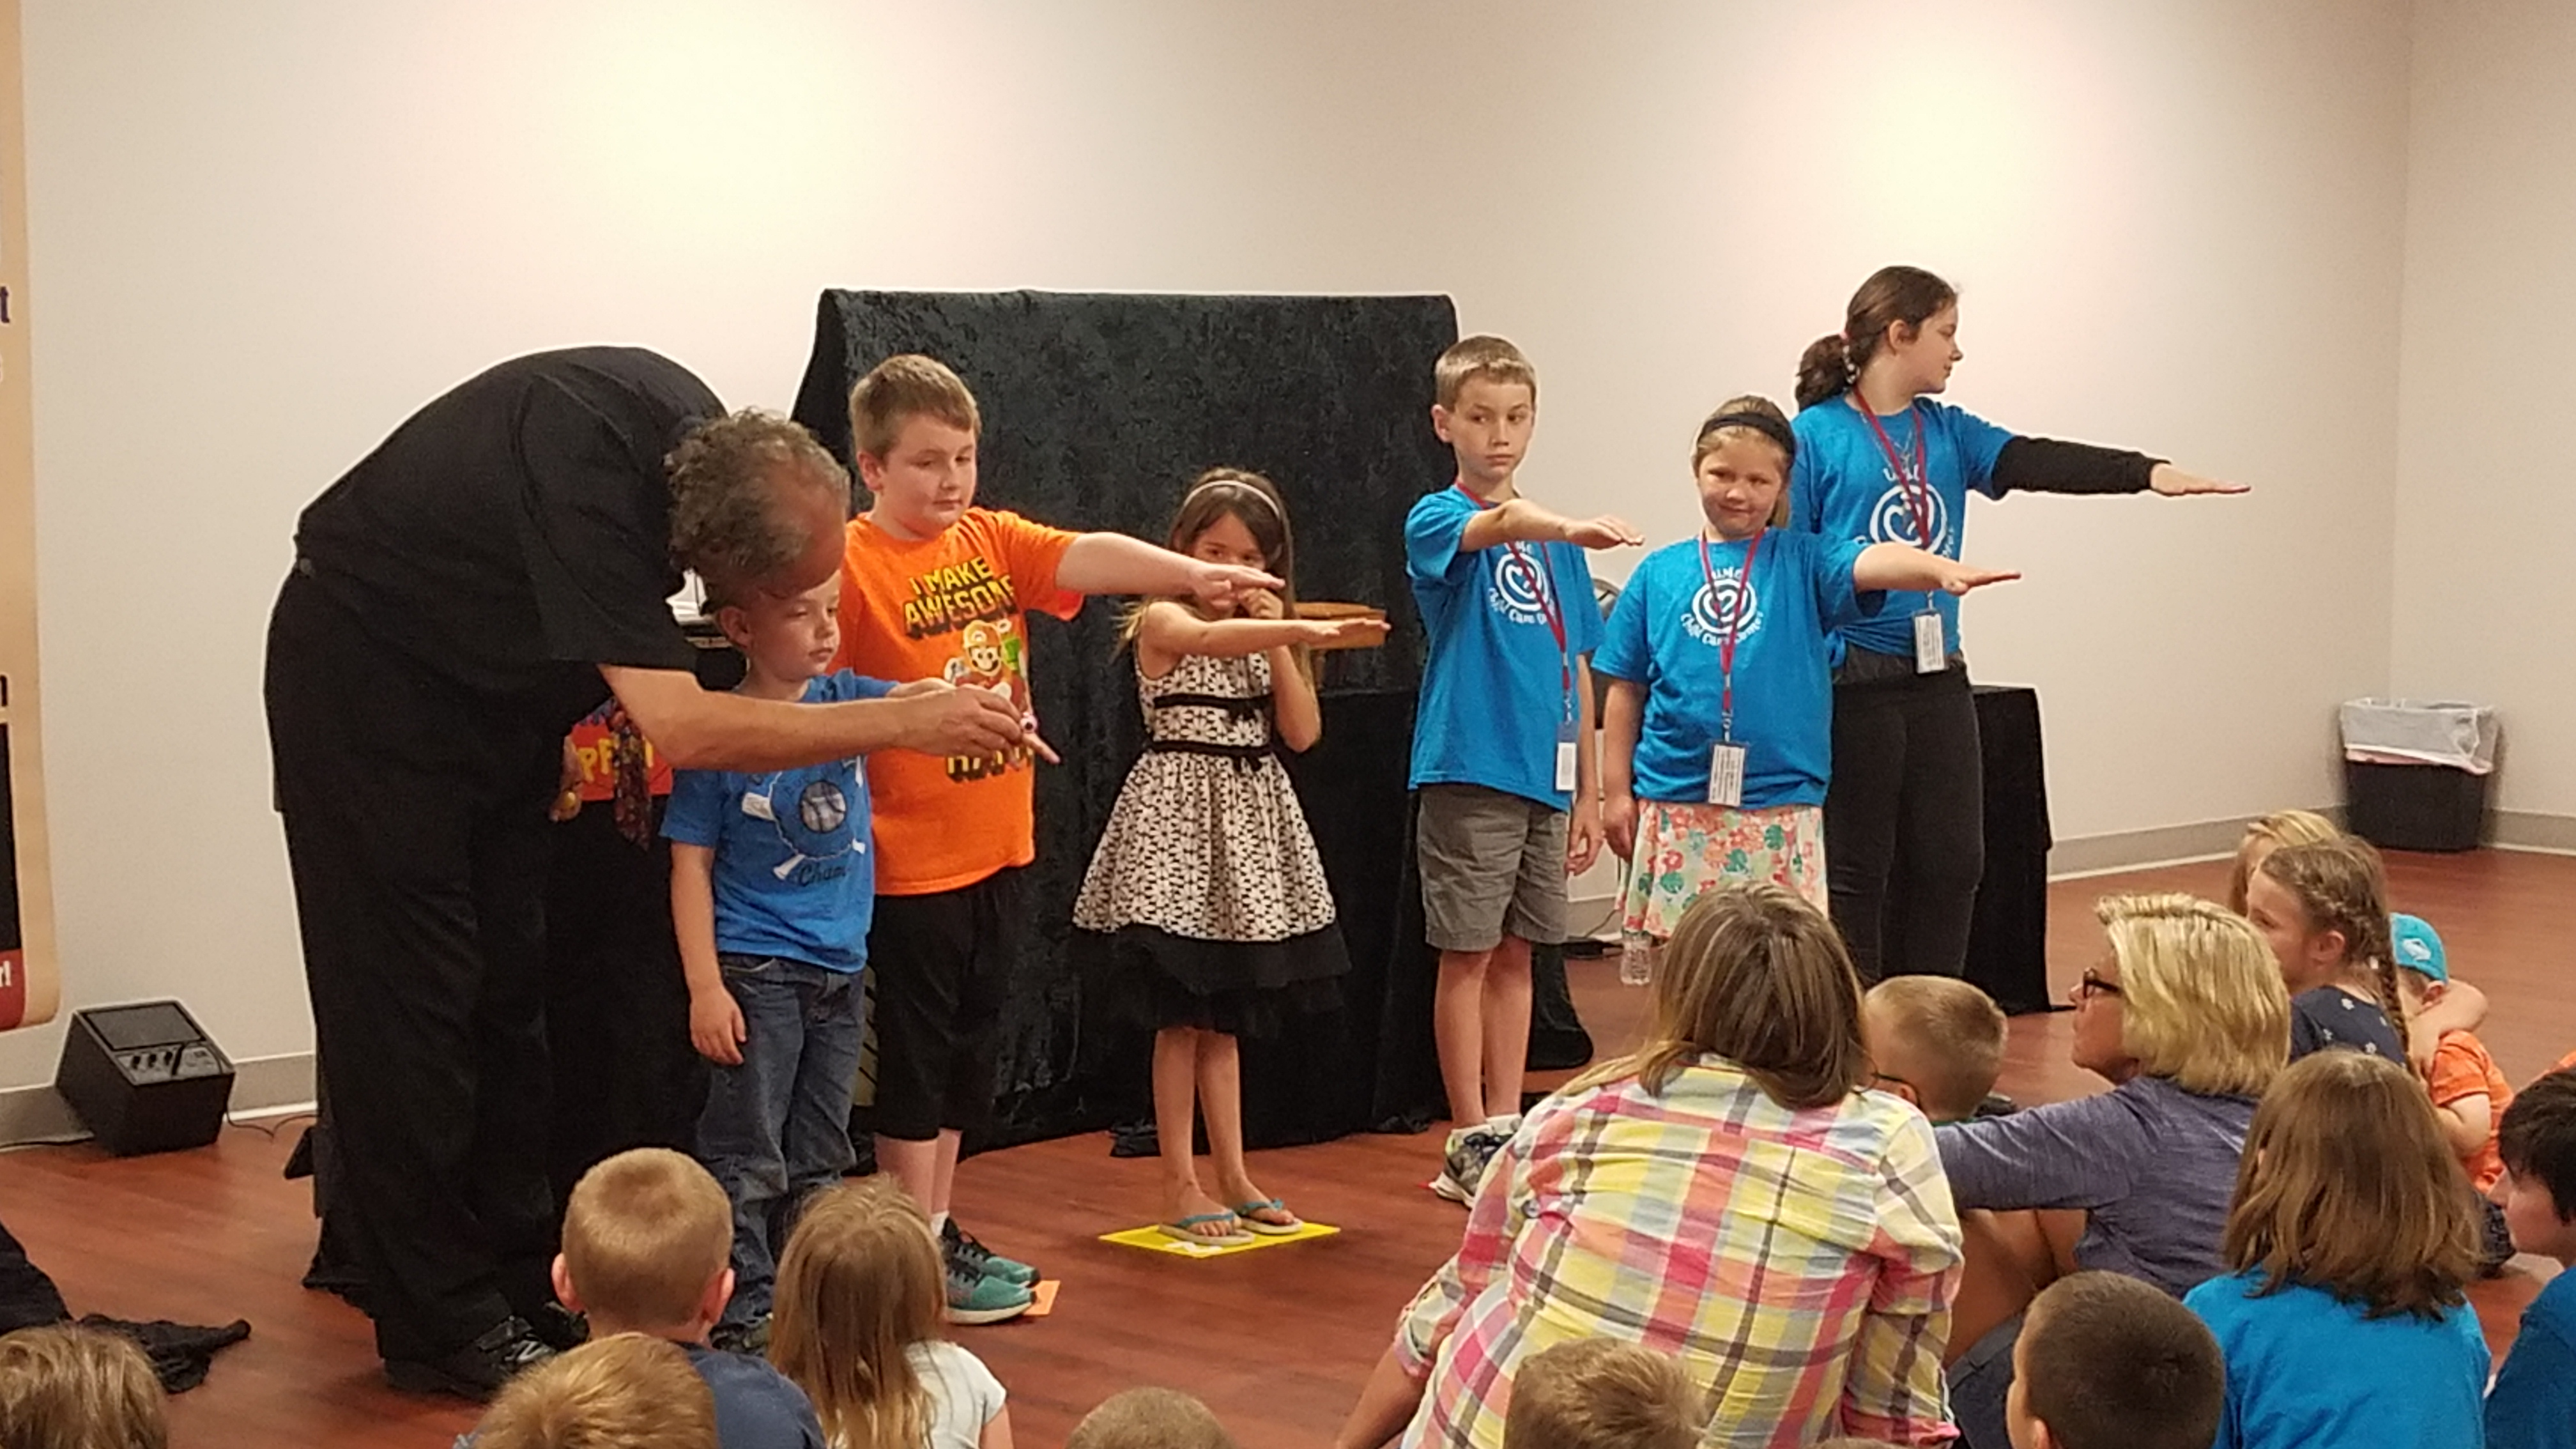 The library brought Mr. Puppet to the Community Center for all to enjoy